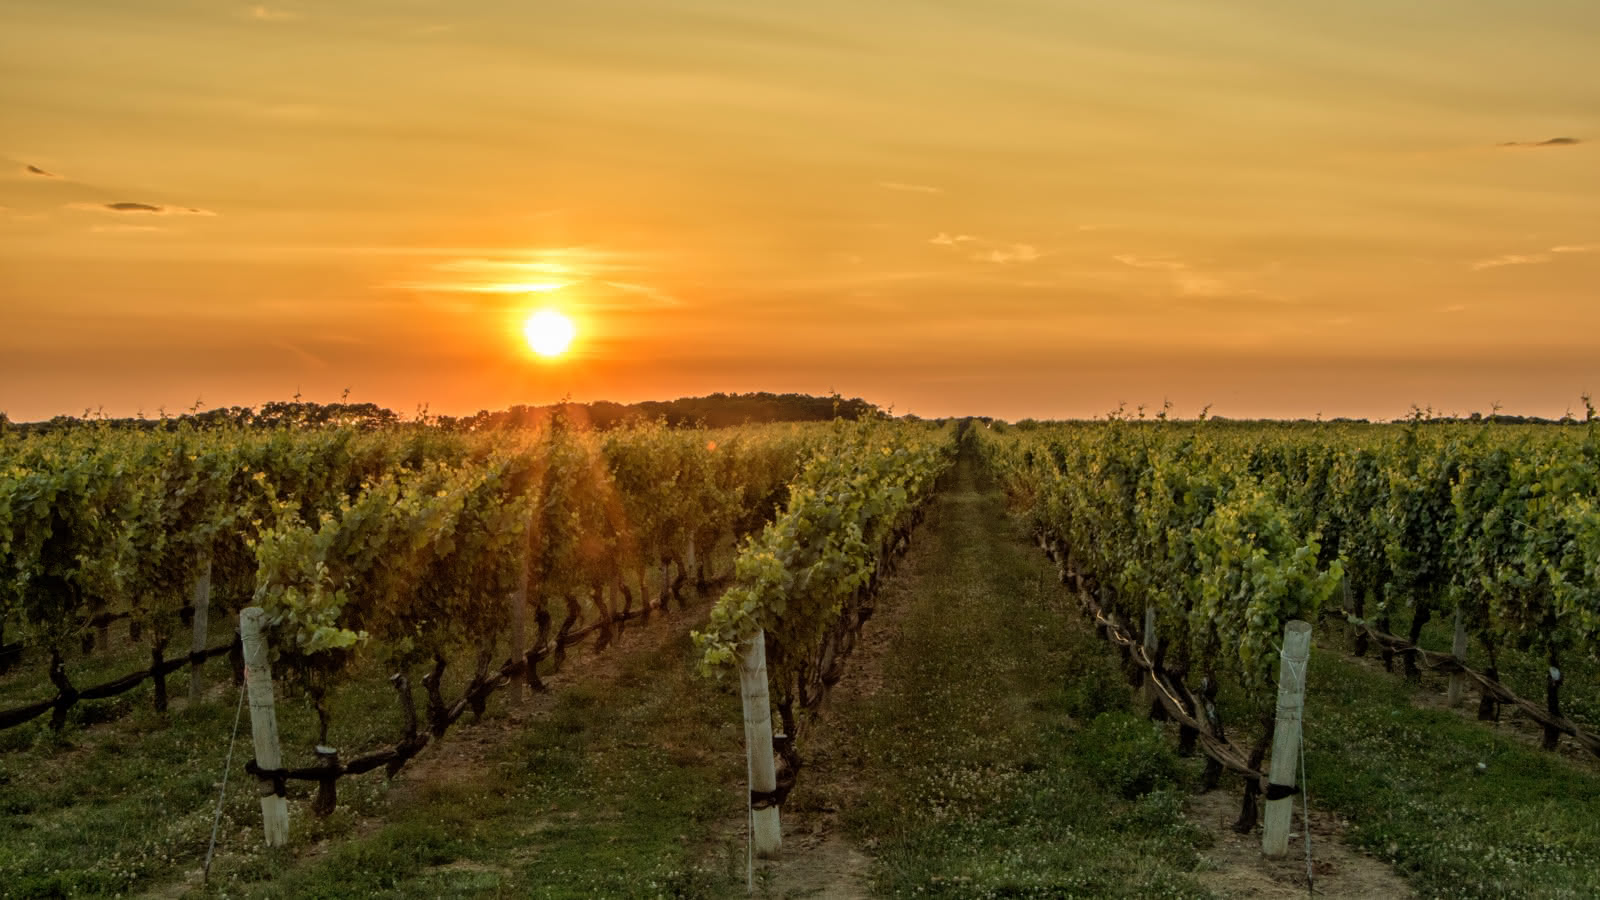 Vignes - Doug-kelley-unsplash